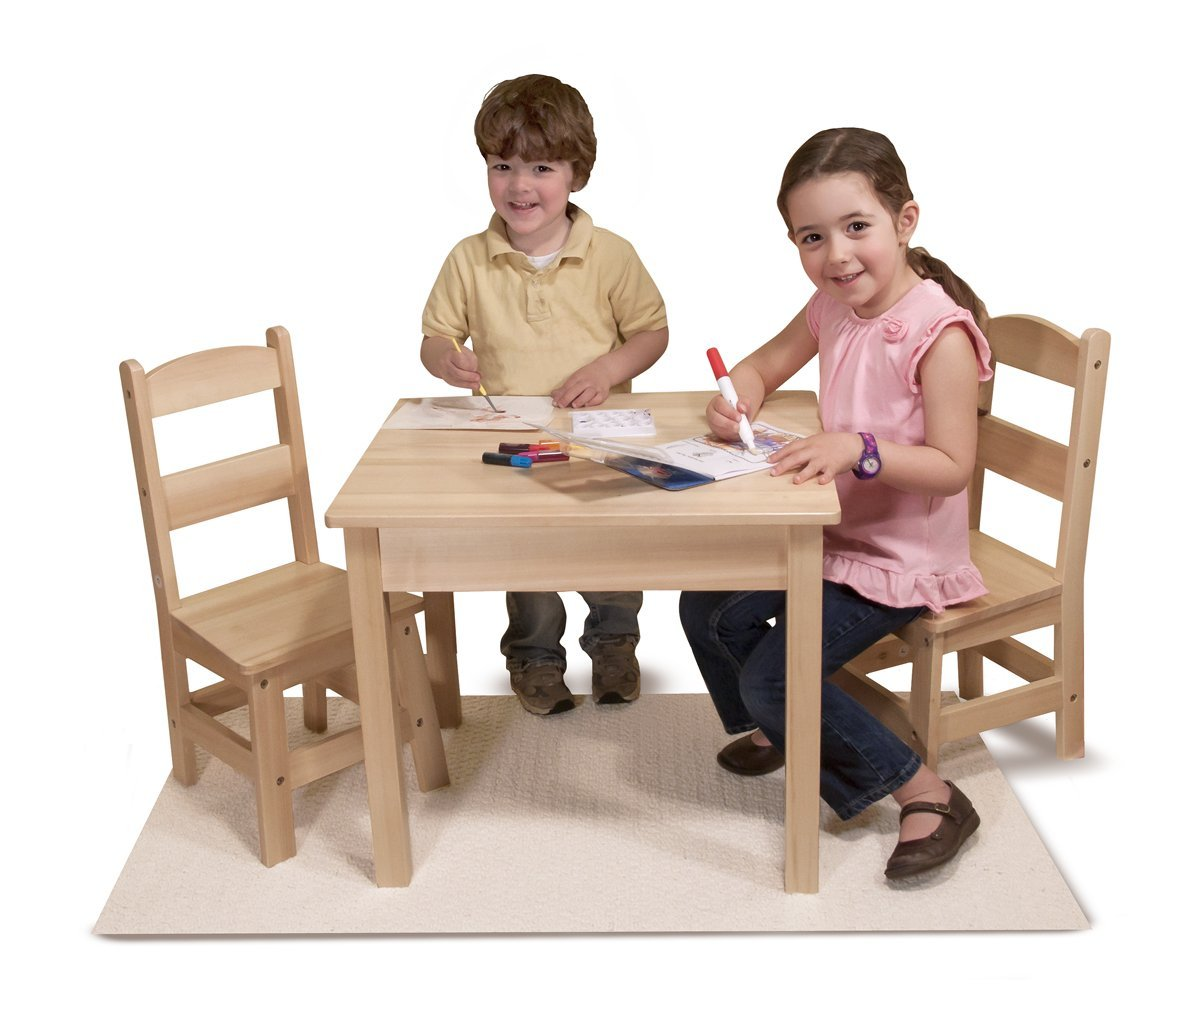 Melissa And Doug Wooden Kids Table 69 99 Save 60